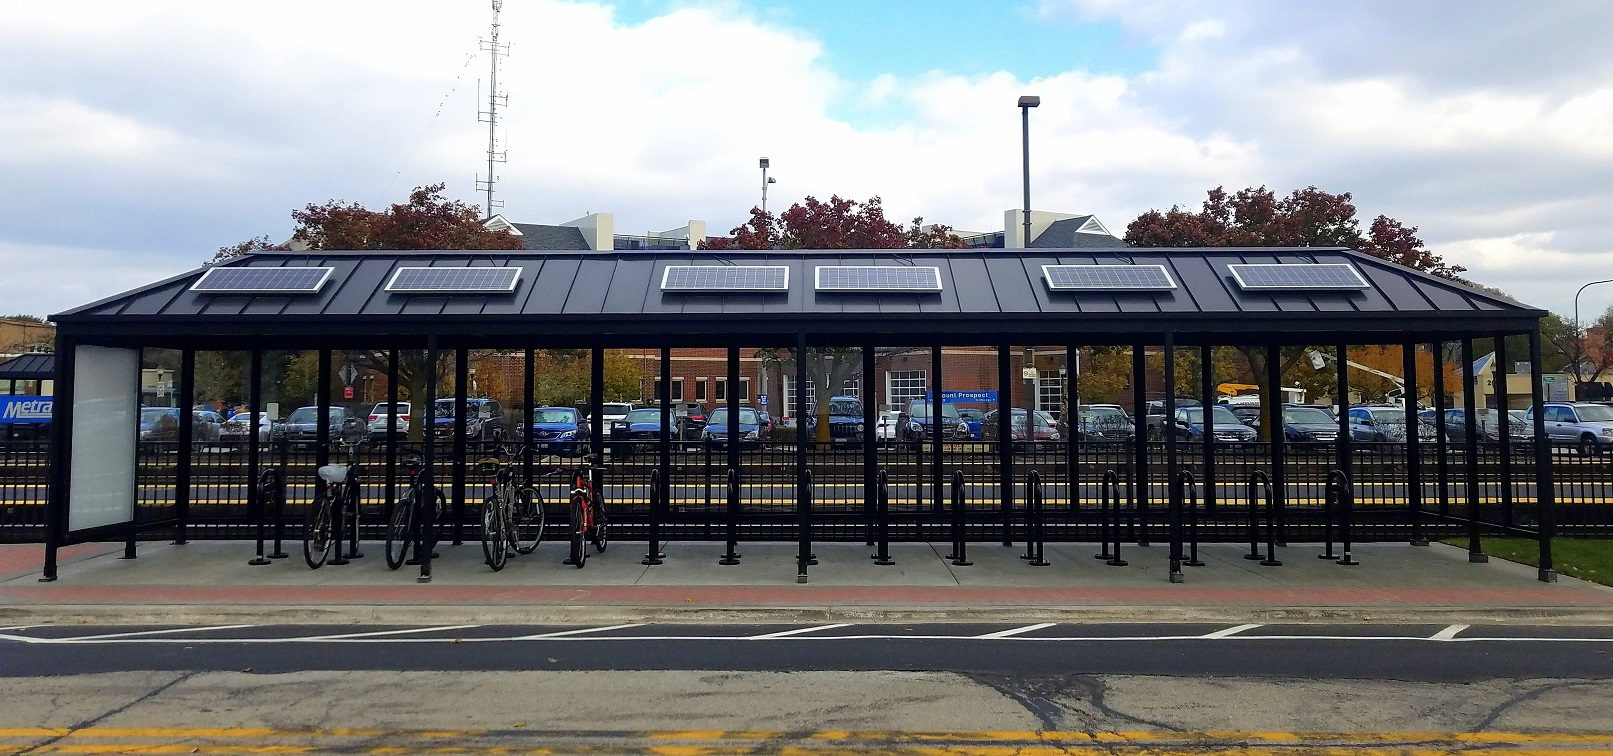 USA Manufacturer of Bus Stop & Transit Passenger Waiting Shelters, Custom Shelters, Transit Solar Lighting Packages, BRT Shelters, Bike and Bicycle Shelters, Shopping Cart Corrals, Covered Walkways, the SolStop, Digital Wayfinding and Advertising Boxs. Made in USA and is Buy America Compliant.